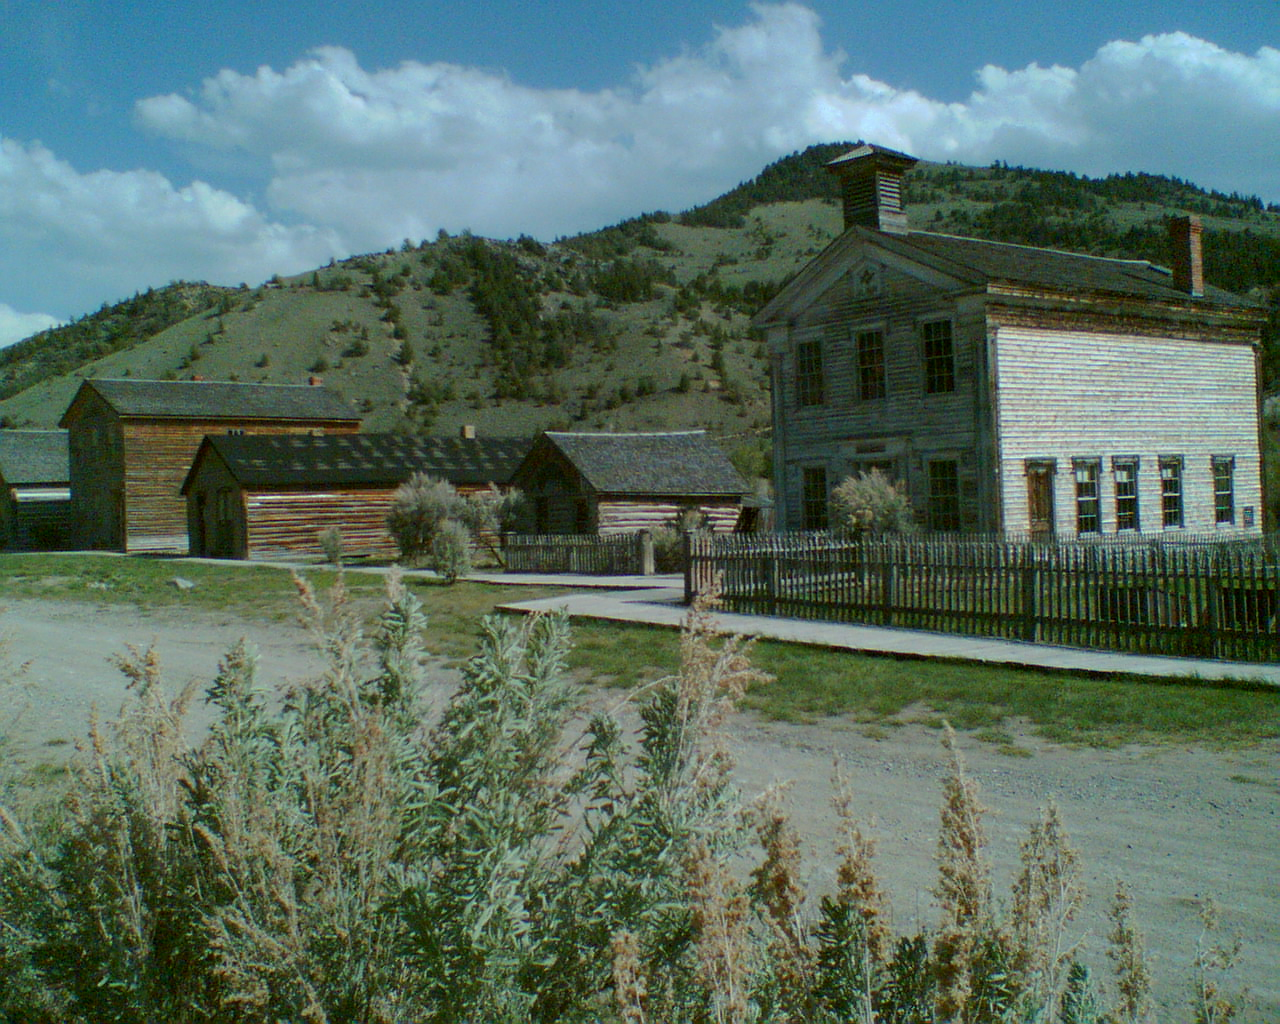 Abandoned buildings in the ghost town of Bannack, Montana, USA